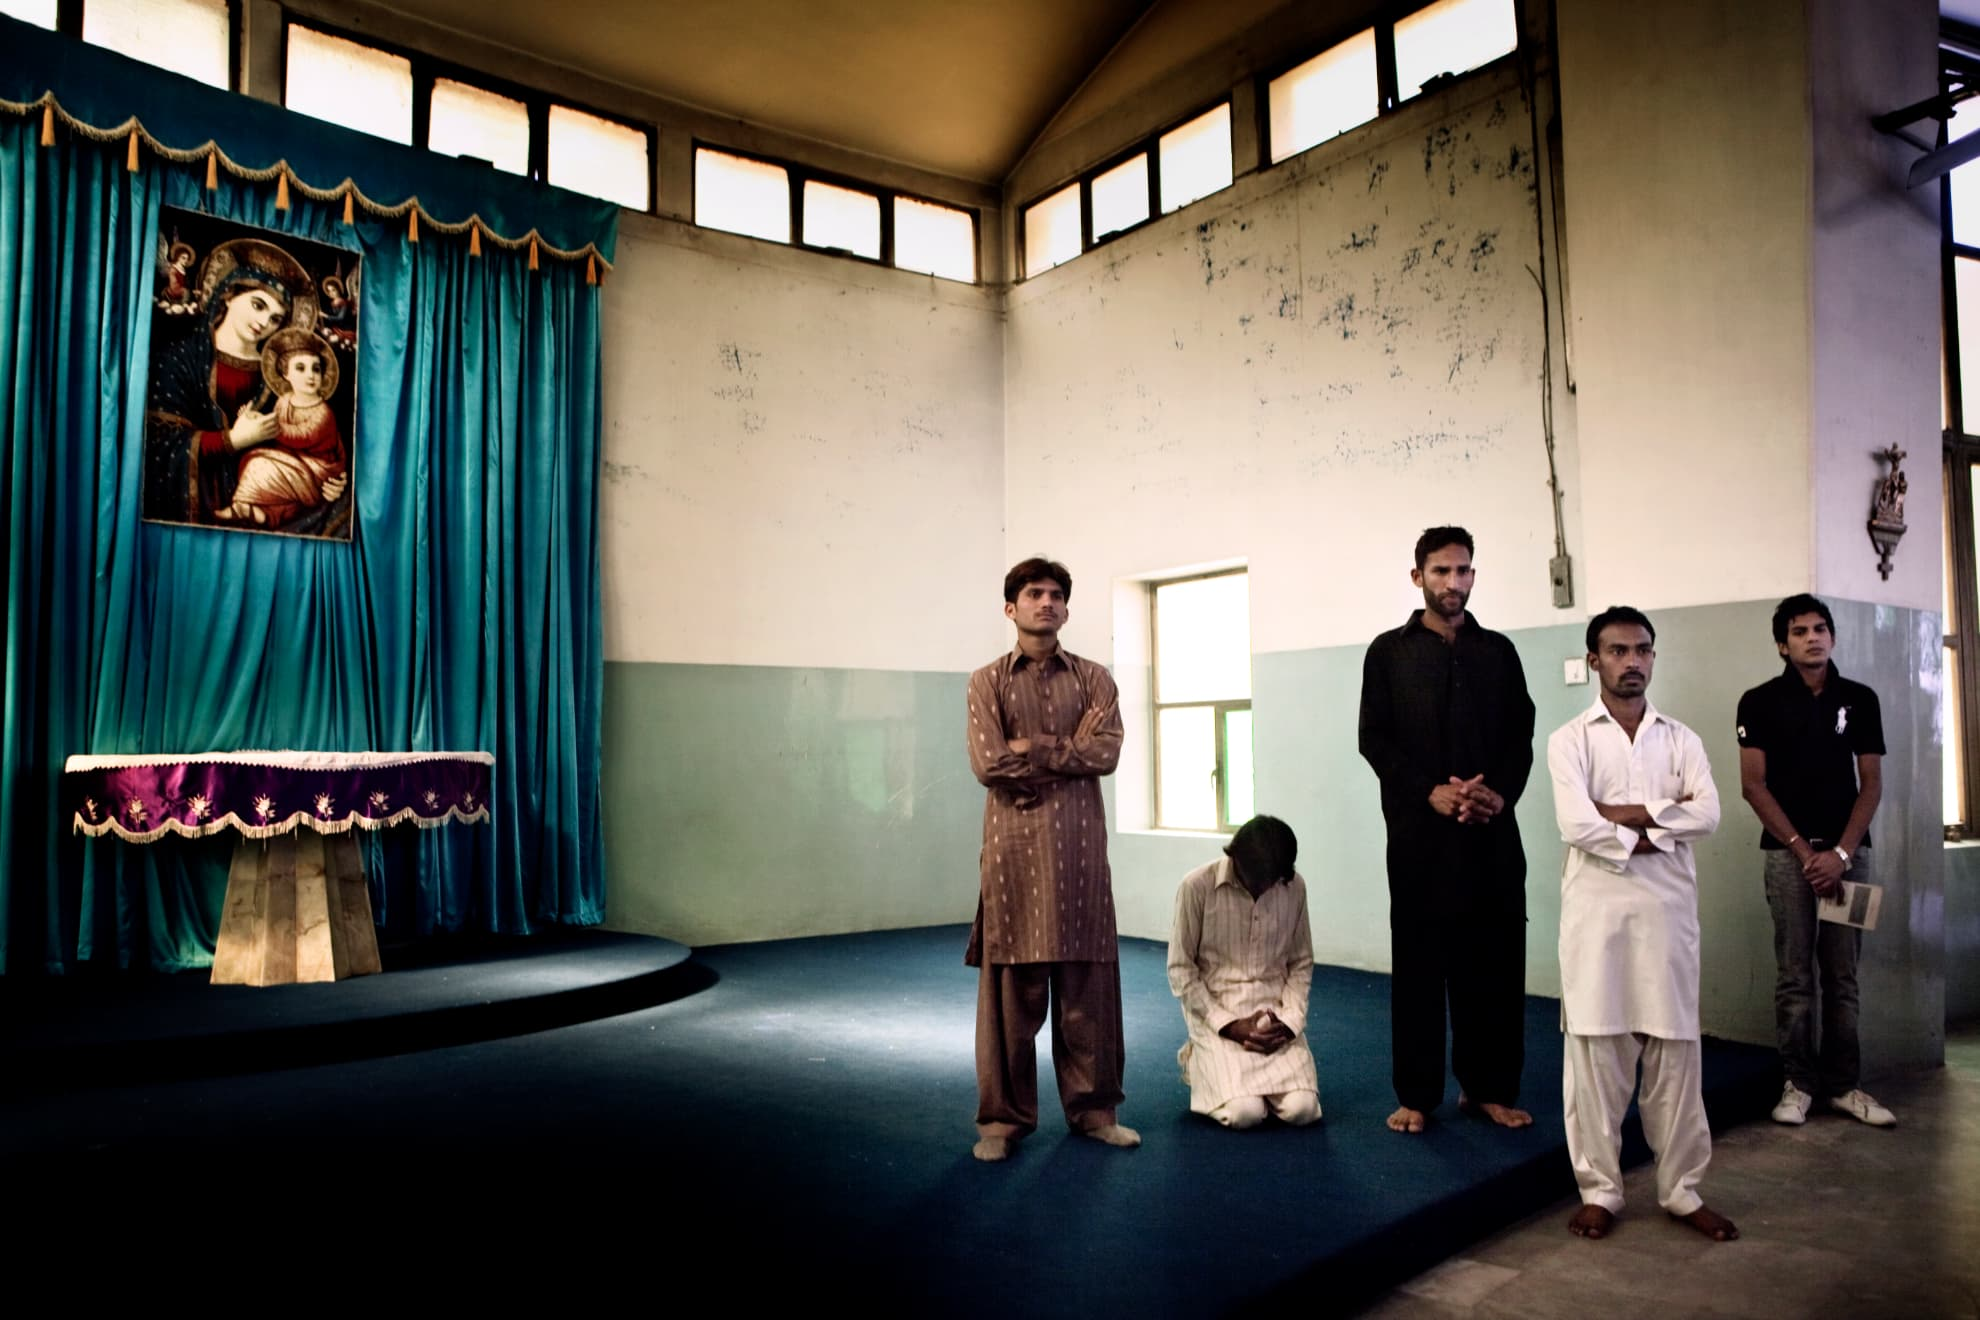 Faisalabad, Pakistan.The Stations of the Cross in the cathedral of Saints Peter and Paul in Faisalabad. The Sharia law pertaining to blasphemy is often at the heart of problems between the two communities. The settlement of differences between christians and muslims often end in charges of blasphemy against the christian party to the dispute. As Pakistani courts only require a single witness to convict a person of a capital offense, Christians often become the innocent victims of trumped-up charges.